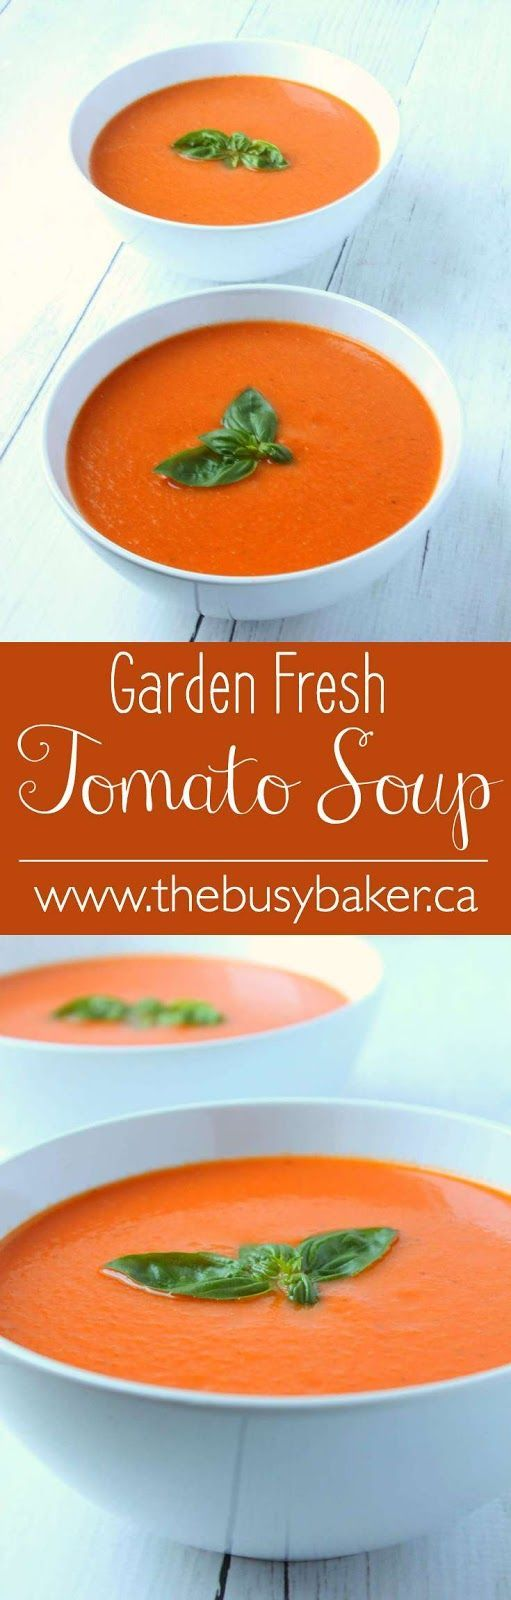 how to make tomato soup with fresh garden tomatoes